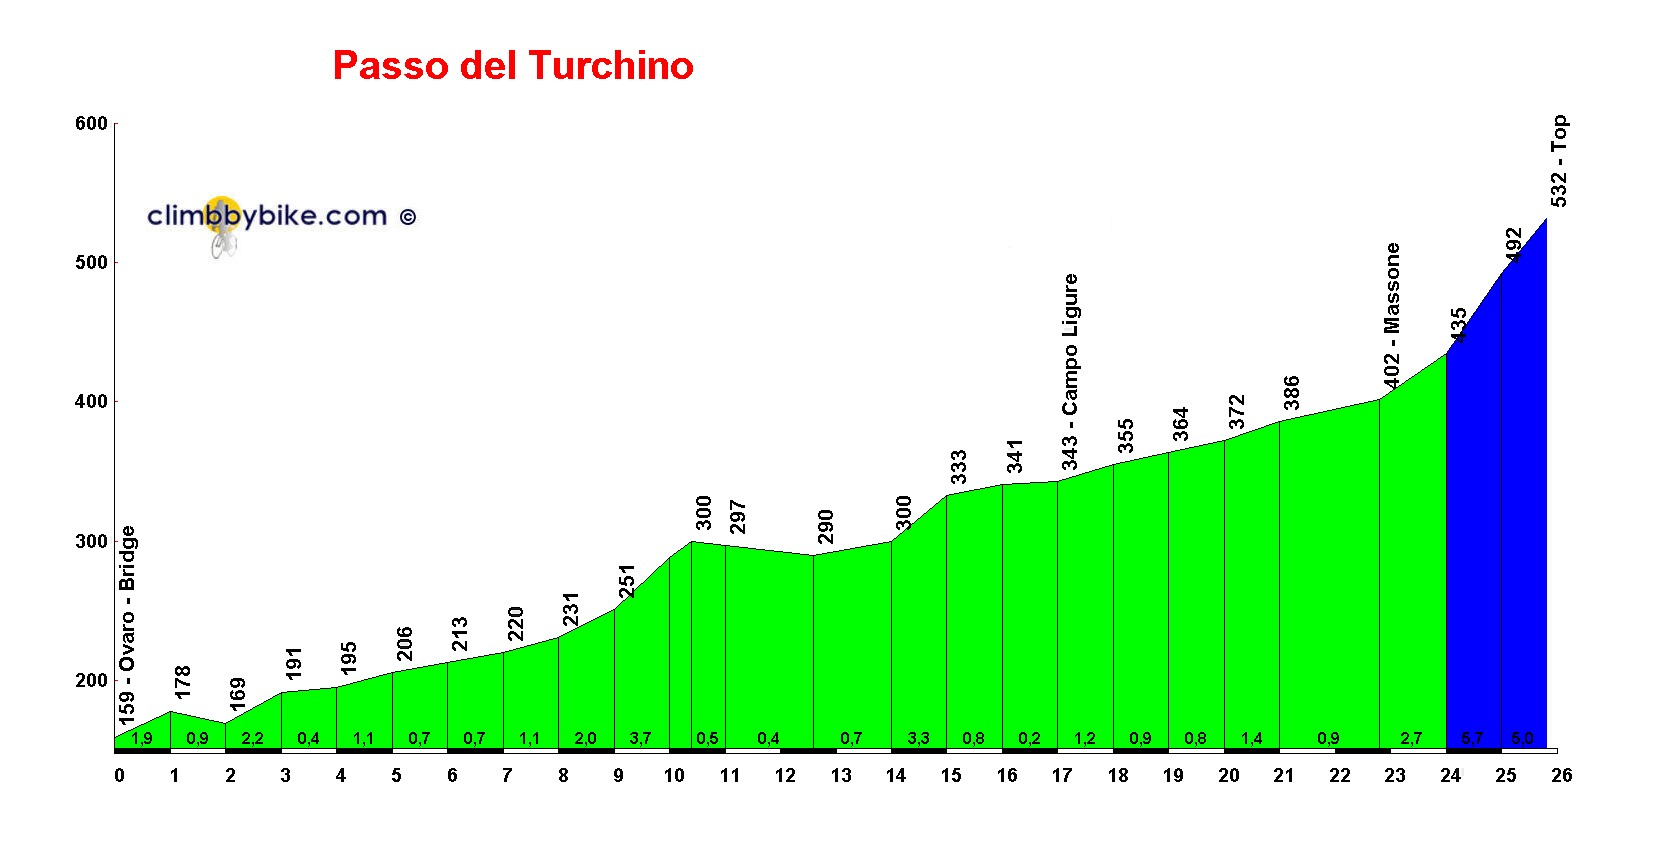 Elevation profile for Passo del Turchino